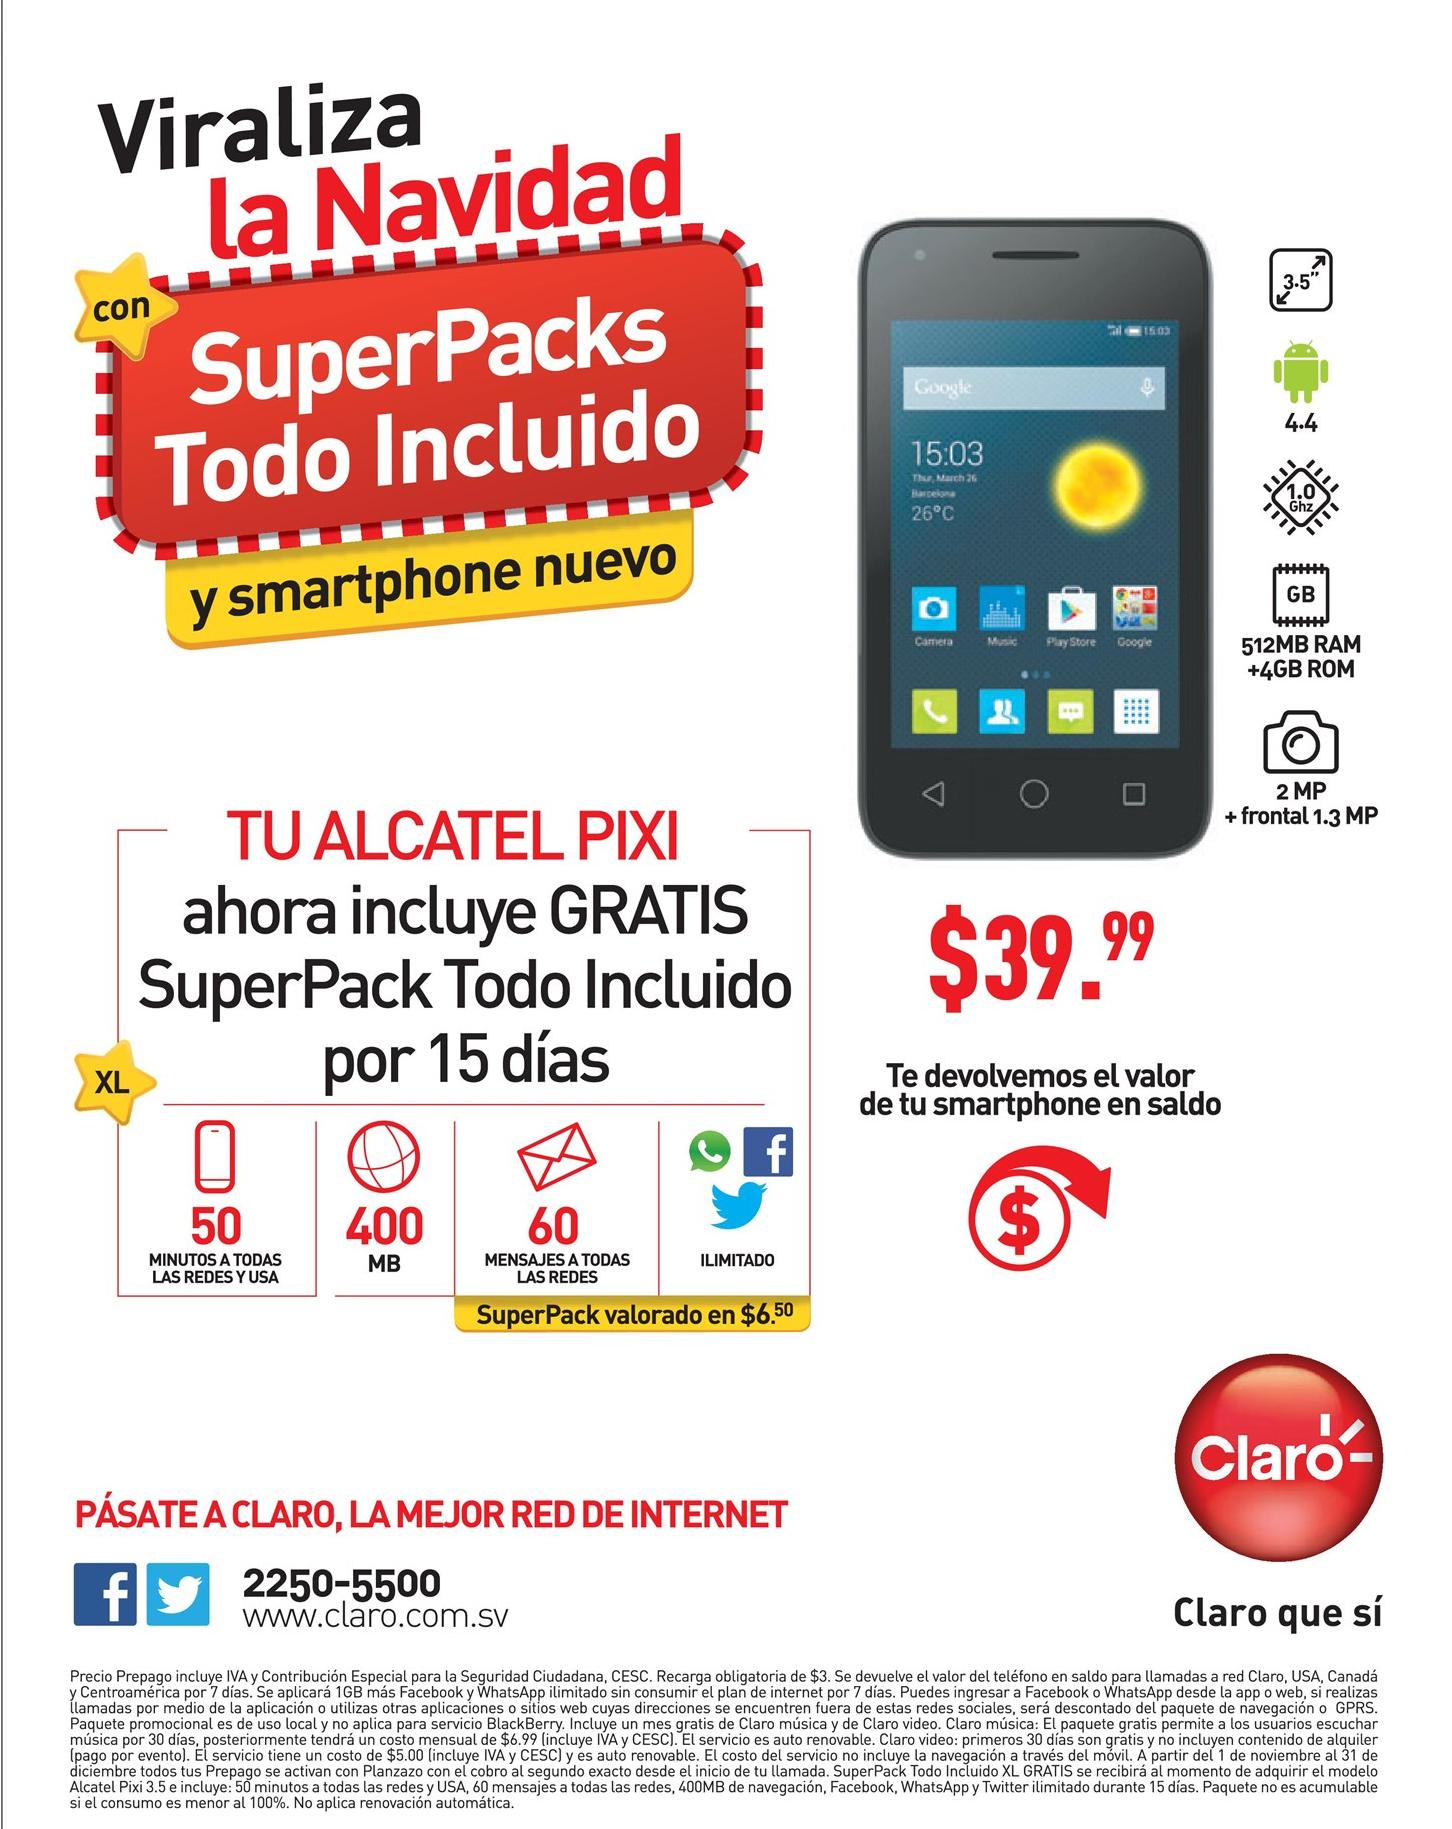 Ofertas virales for merry christmas